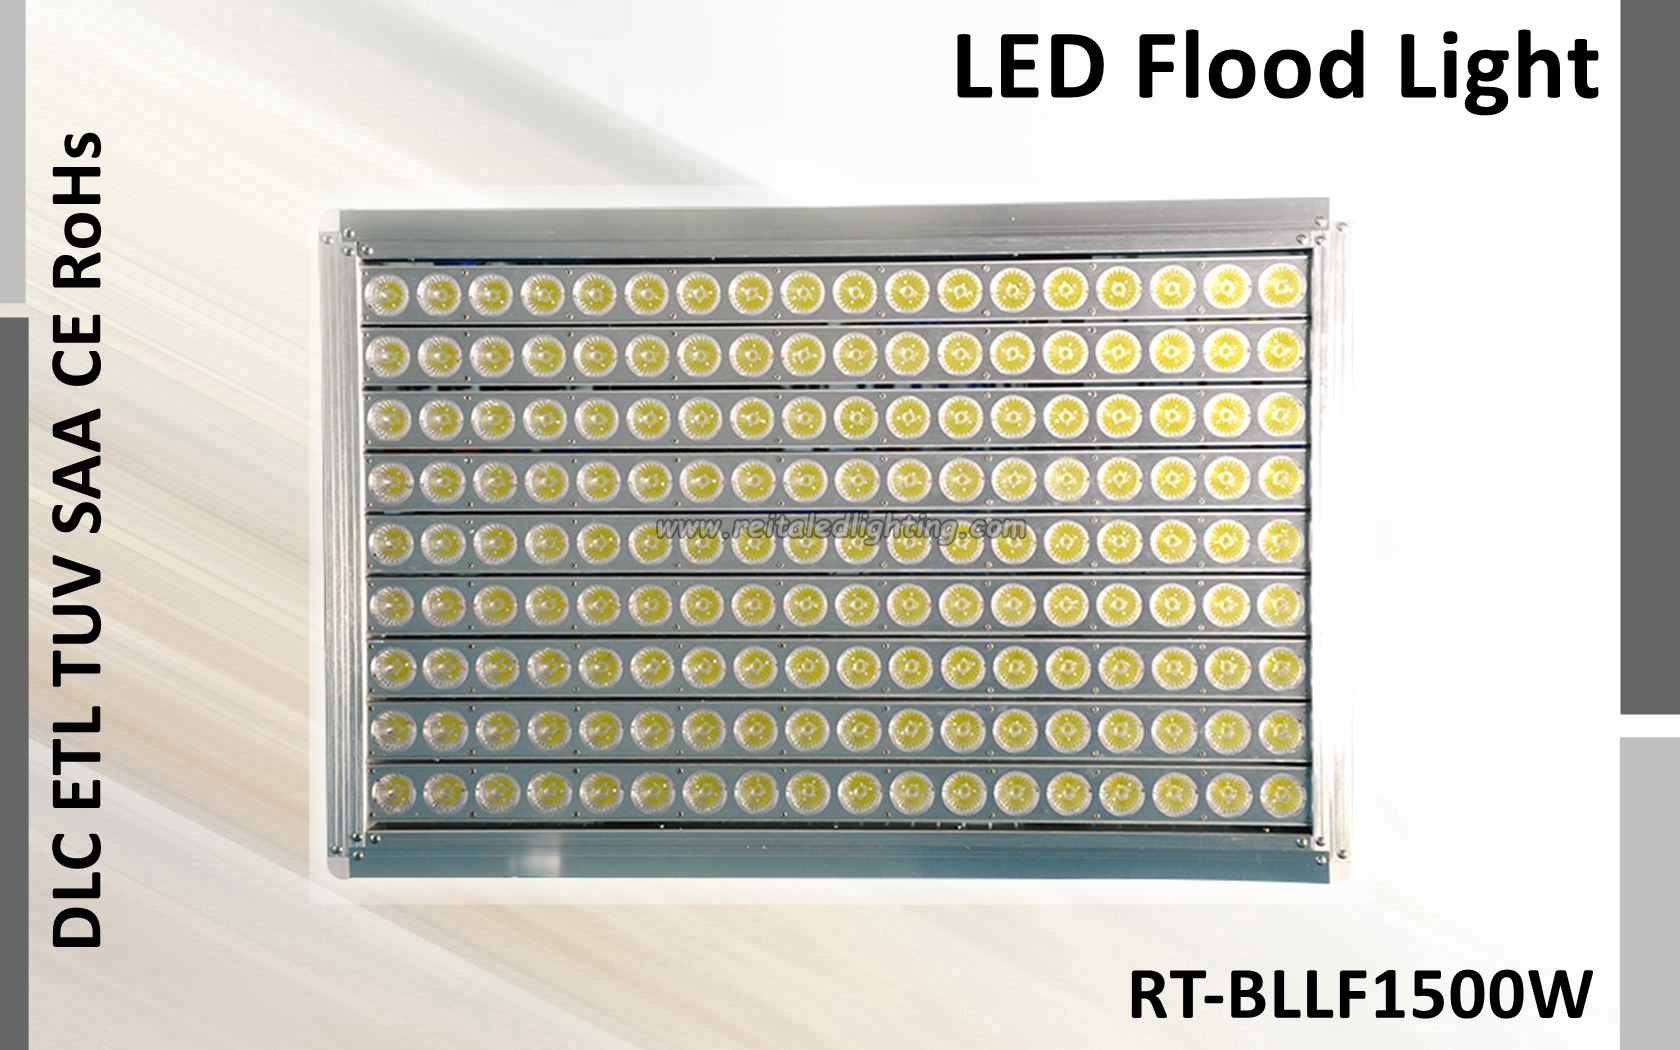 Neue LED Flood Light 1500Watt